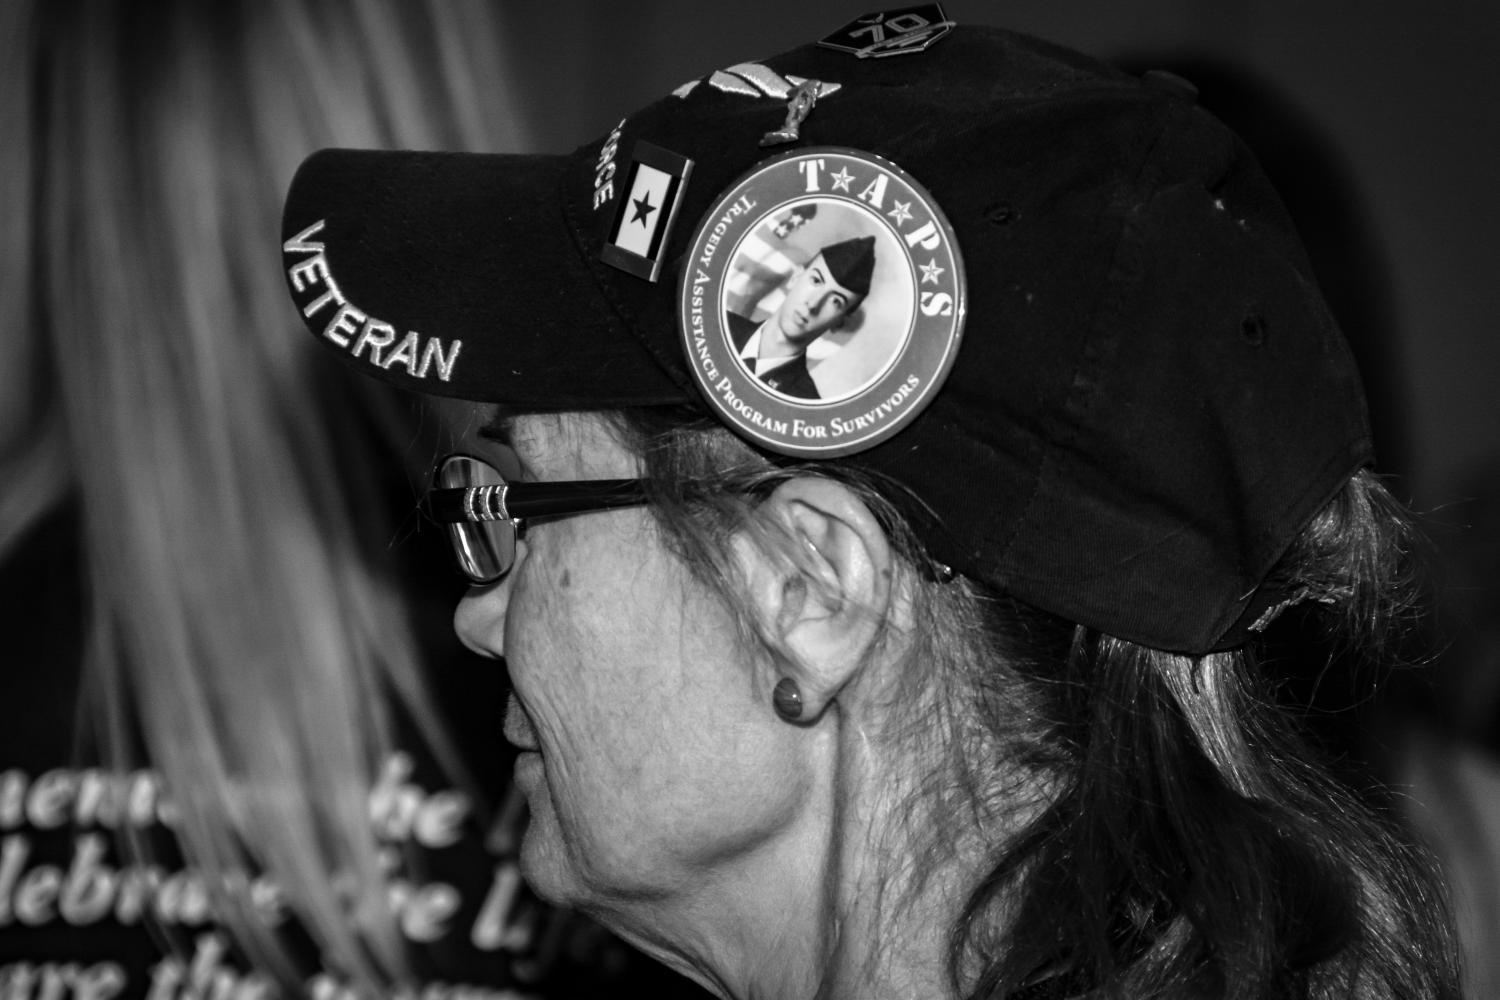 A veteran and relative of a servicemember who died by suicide at the 2019 Tragedy Assistance Program for Survivors (TAPS) conference in Phoenix, Oct. 12, 2019.